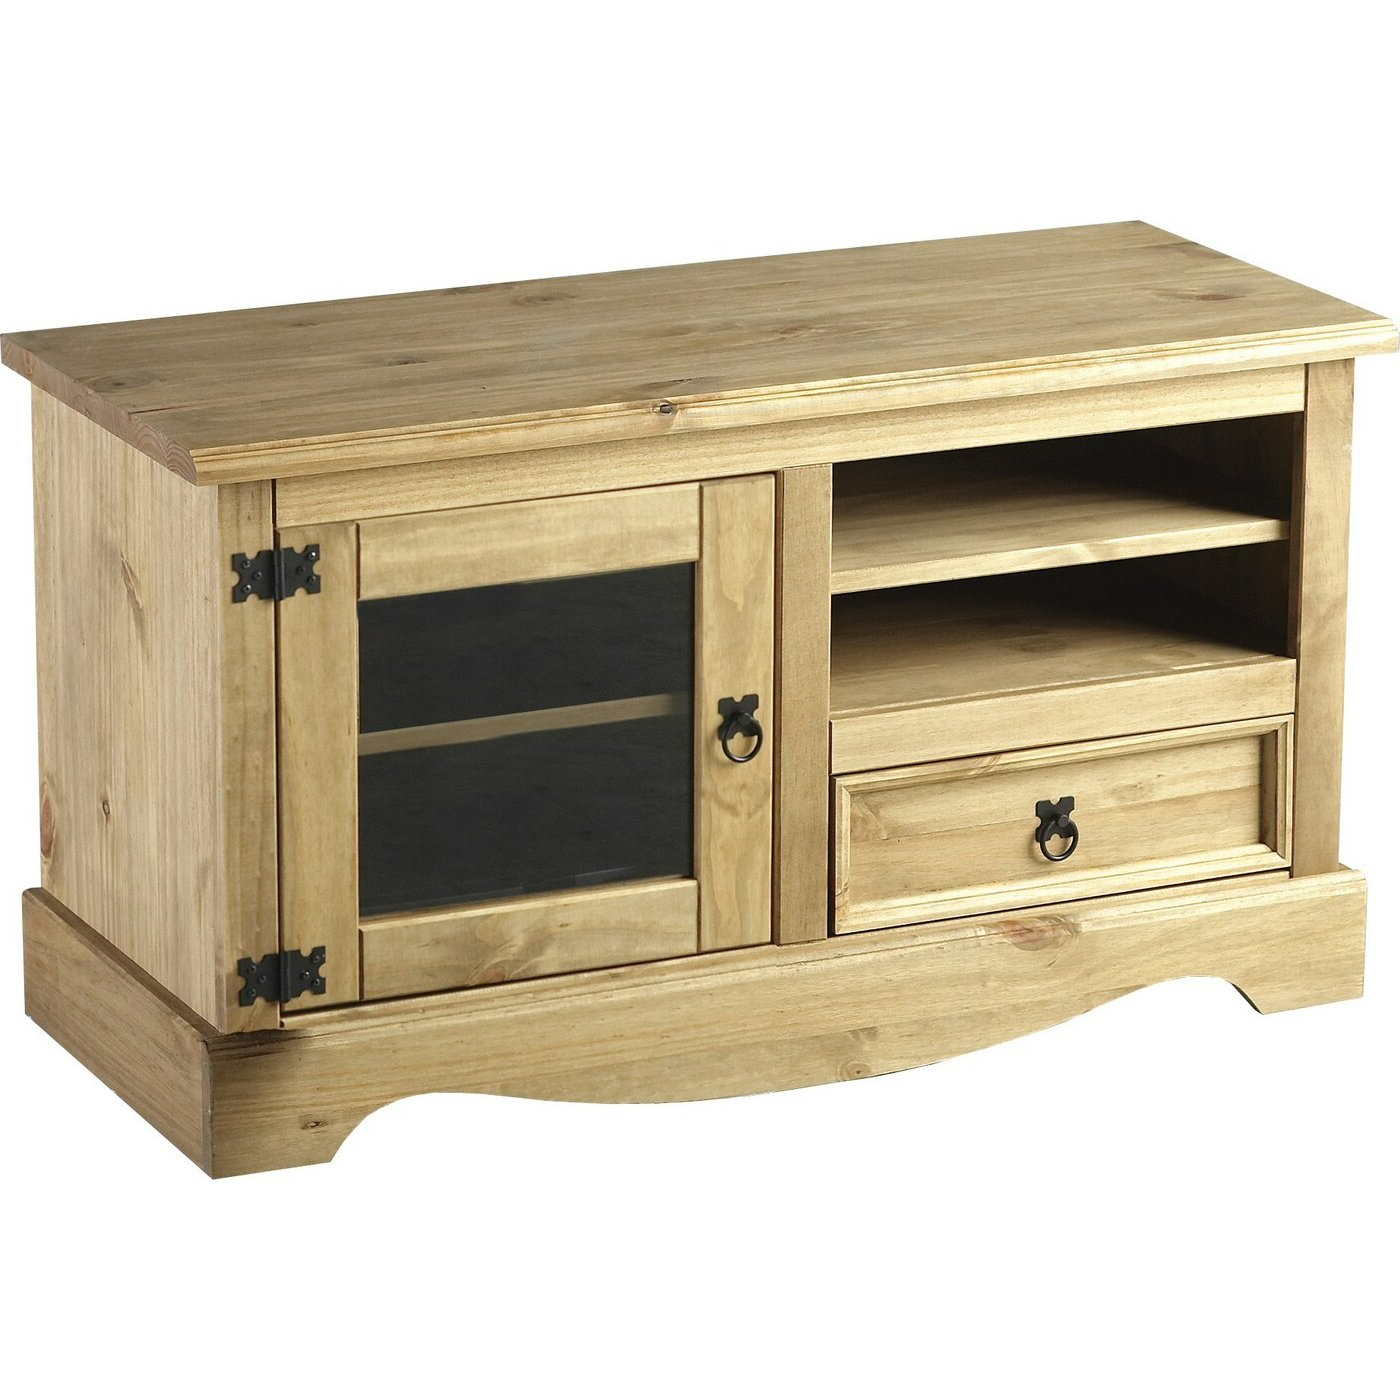 """Fashionable Andover Mills Corona Tv Stand For Tvs Up To 42"""" & Reviews In Corona Corner Tv Stands (View 6 of 10)"""